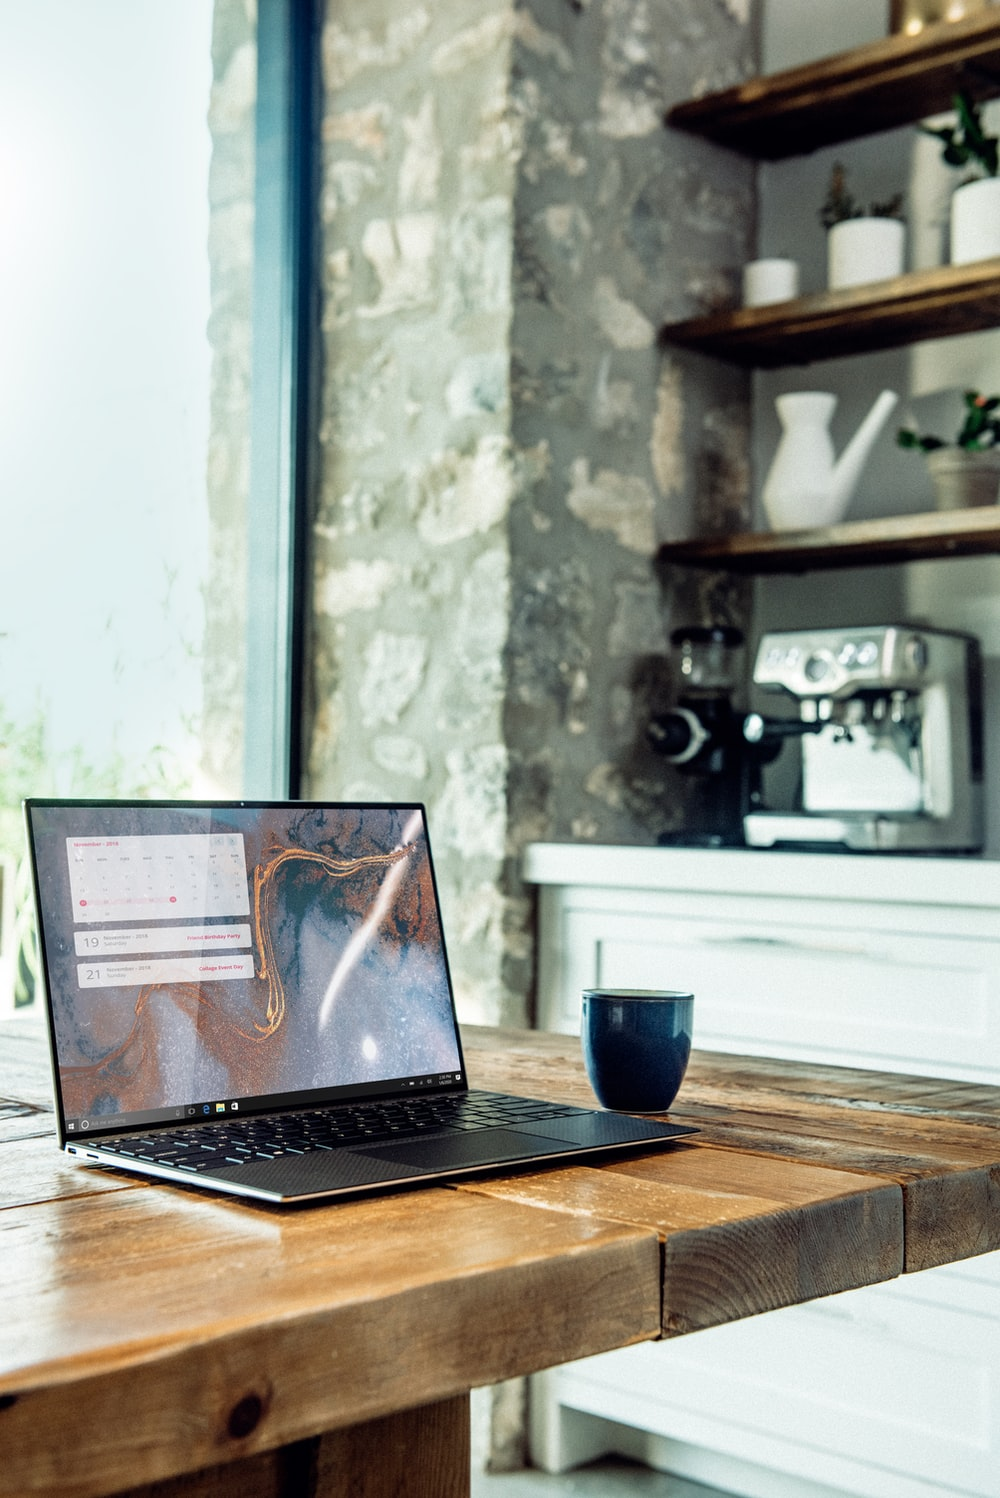 laptop on brown wooden table